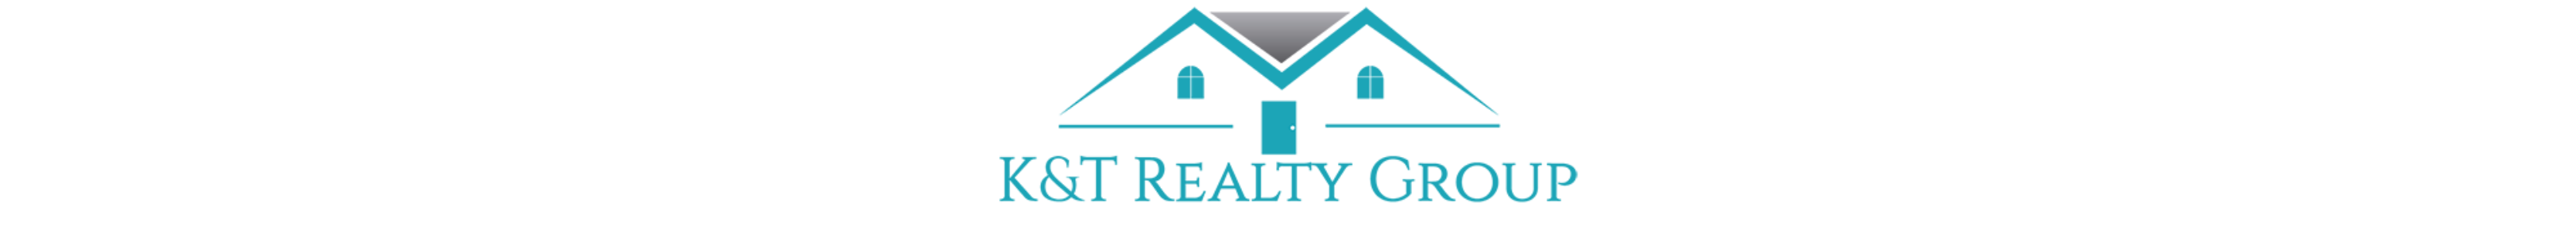 Texas Real Estate – Homes for Sale and Rent- Ktrealtyhomes.com